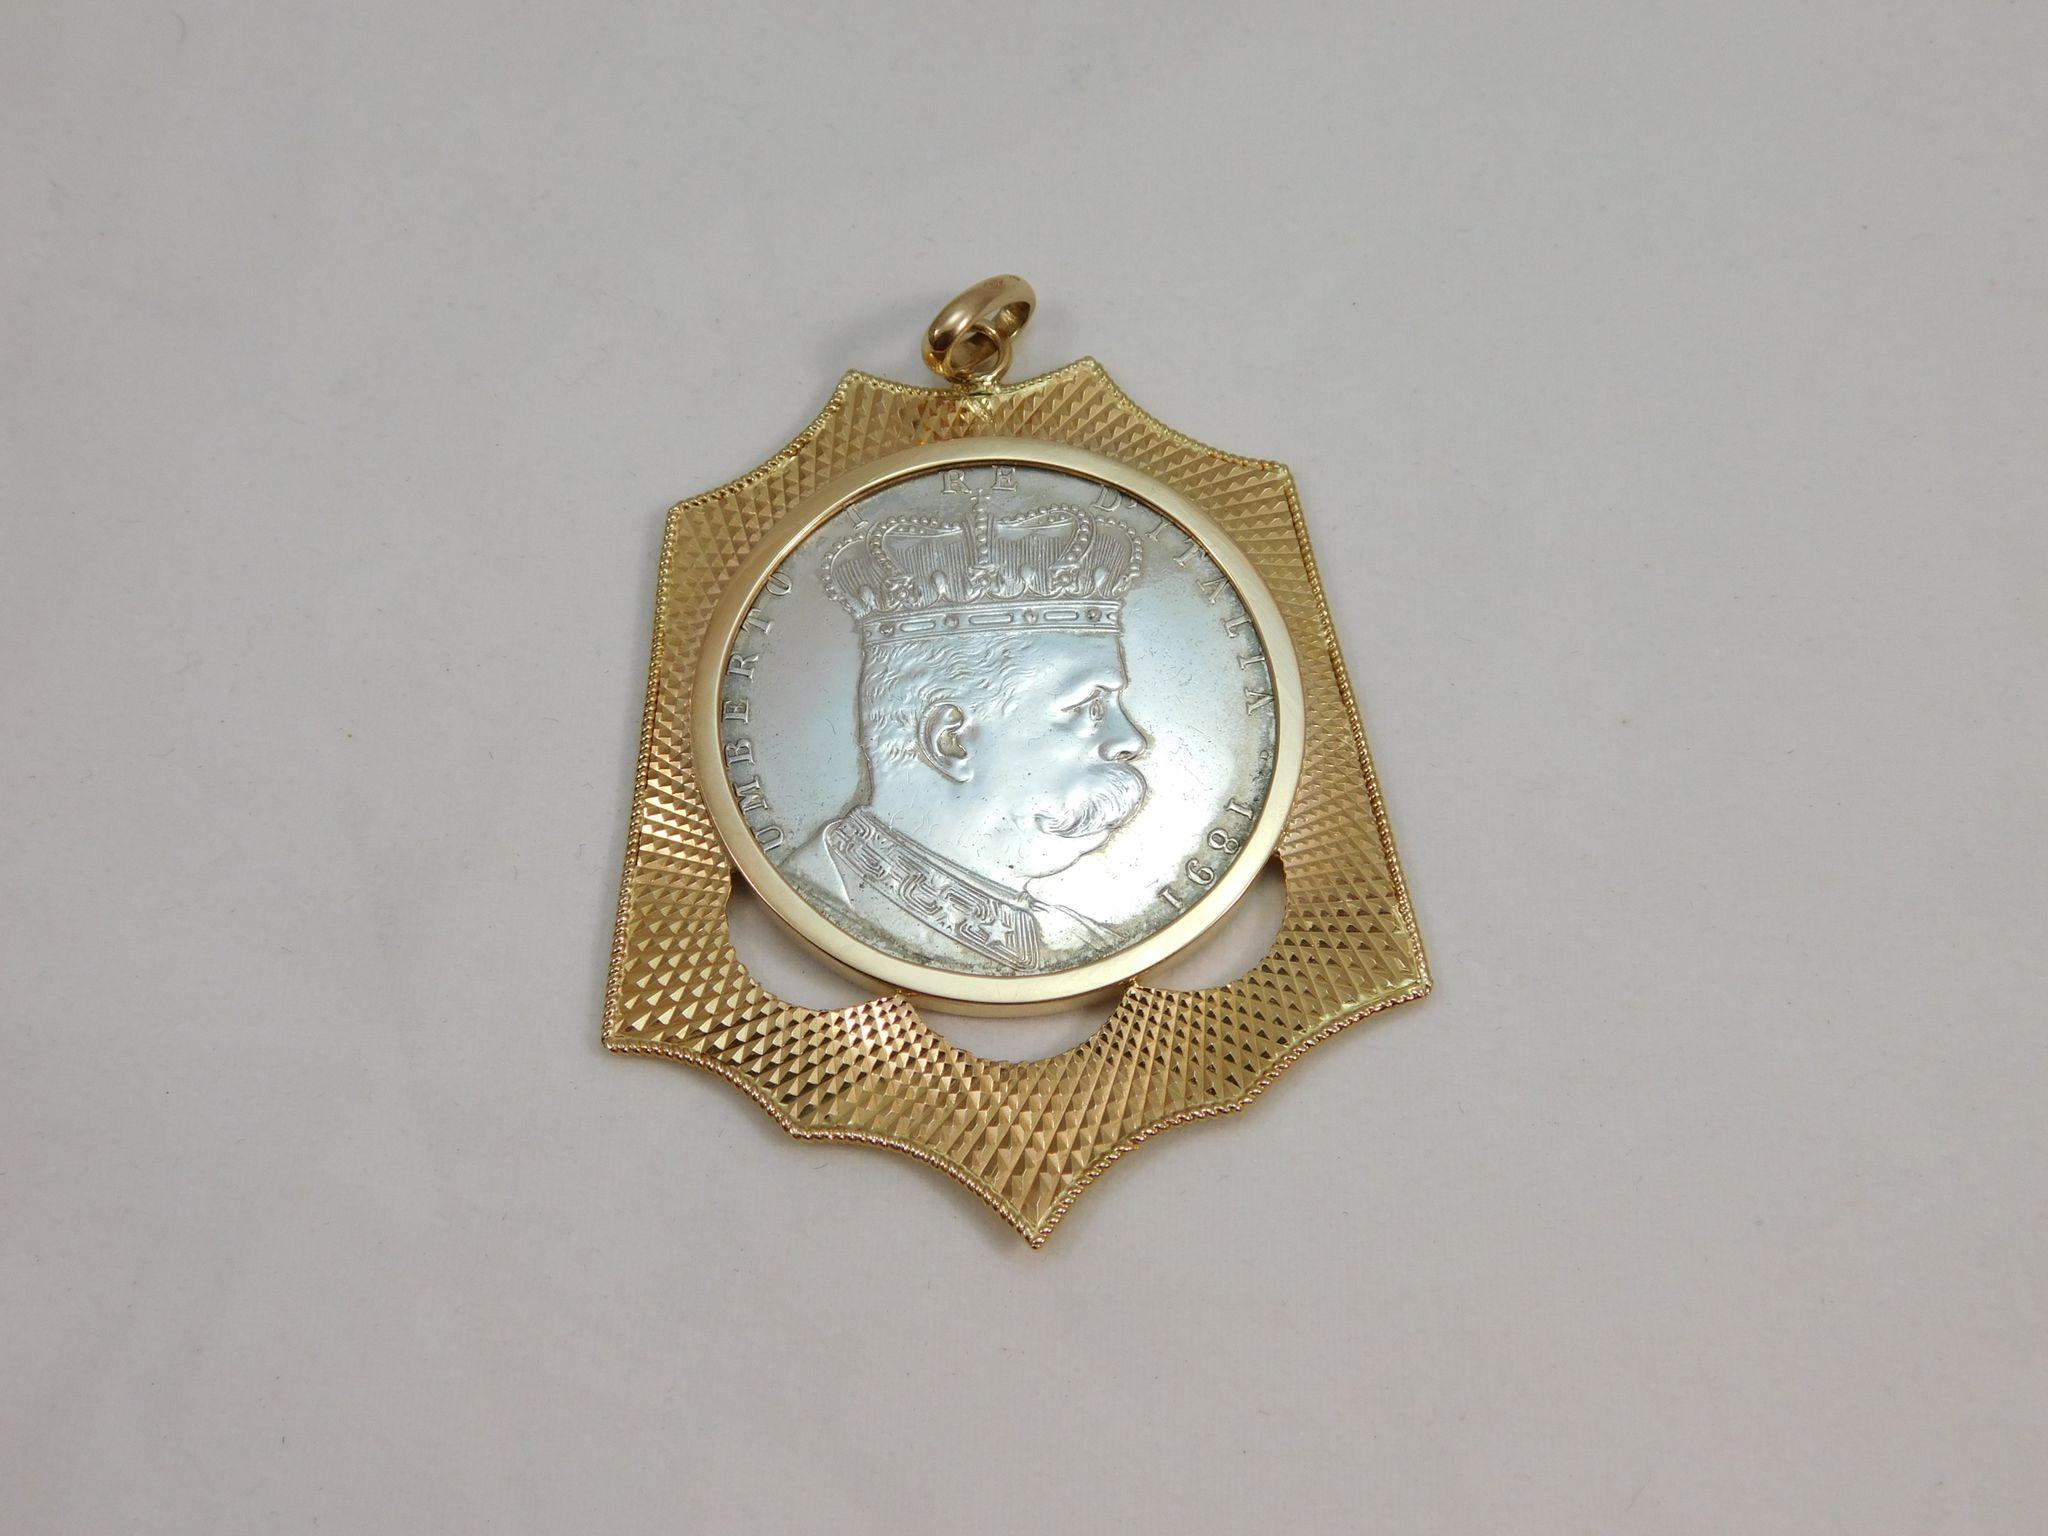 18 karat yellow gold coin holder and rare 1891 silver eritrea 1 18 karat yellow gold coin holder and rare 1891 silver eritrea 1 edberg jewelry ruby lane aloadofball Choice Image